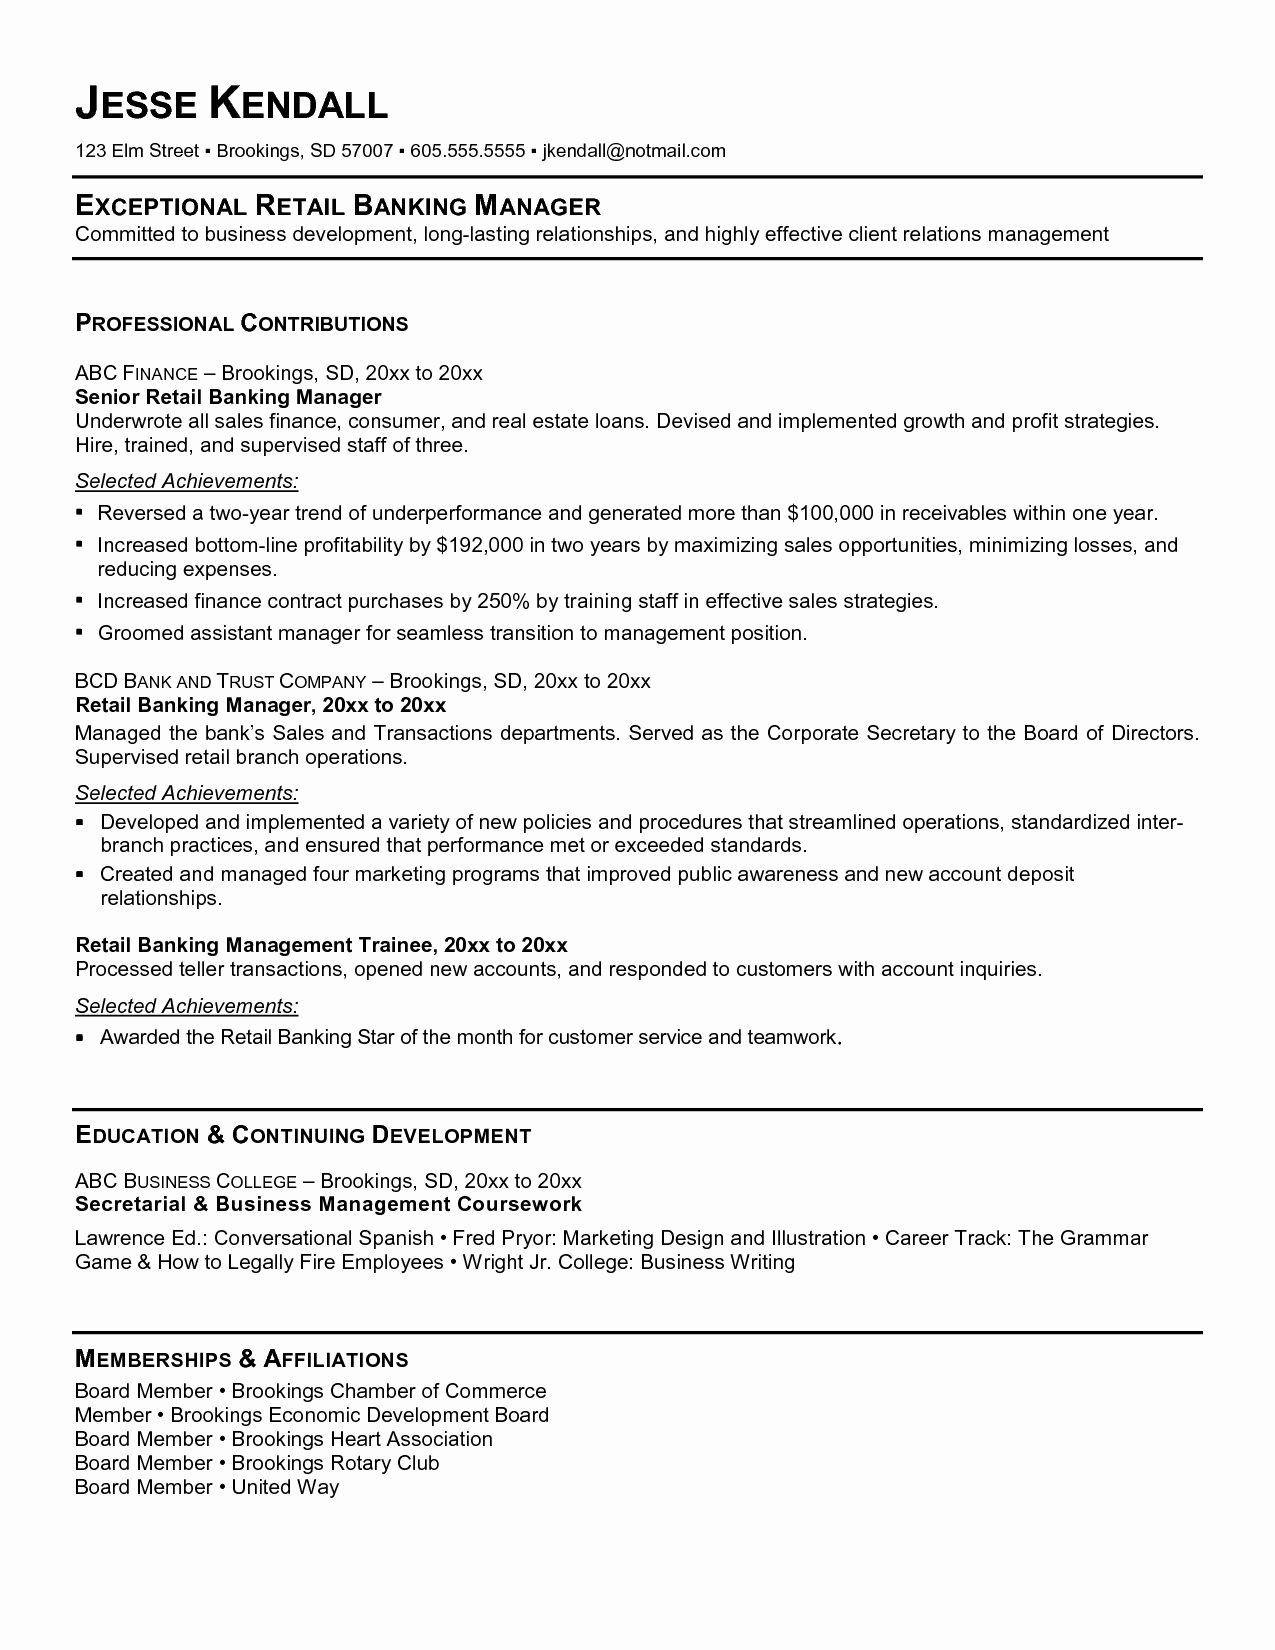 A Resume Title Examples Resume Objective Statement Resume Objective Examples Job Resume Samples